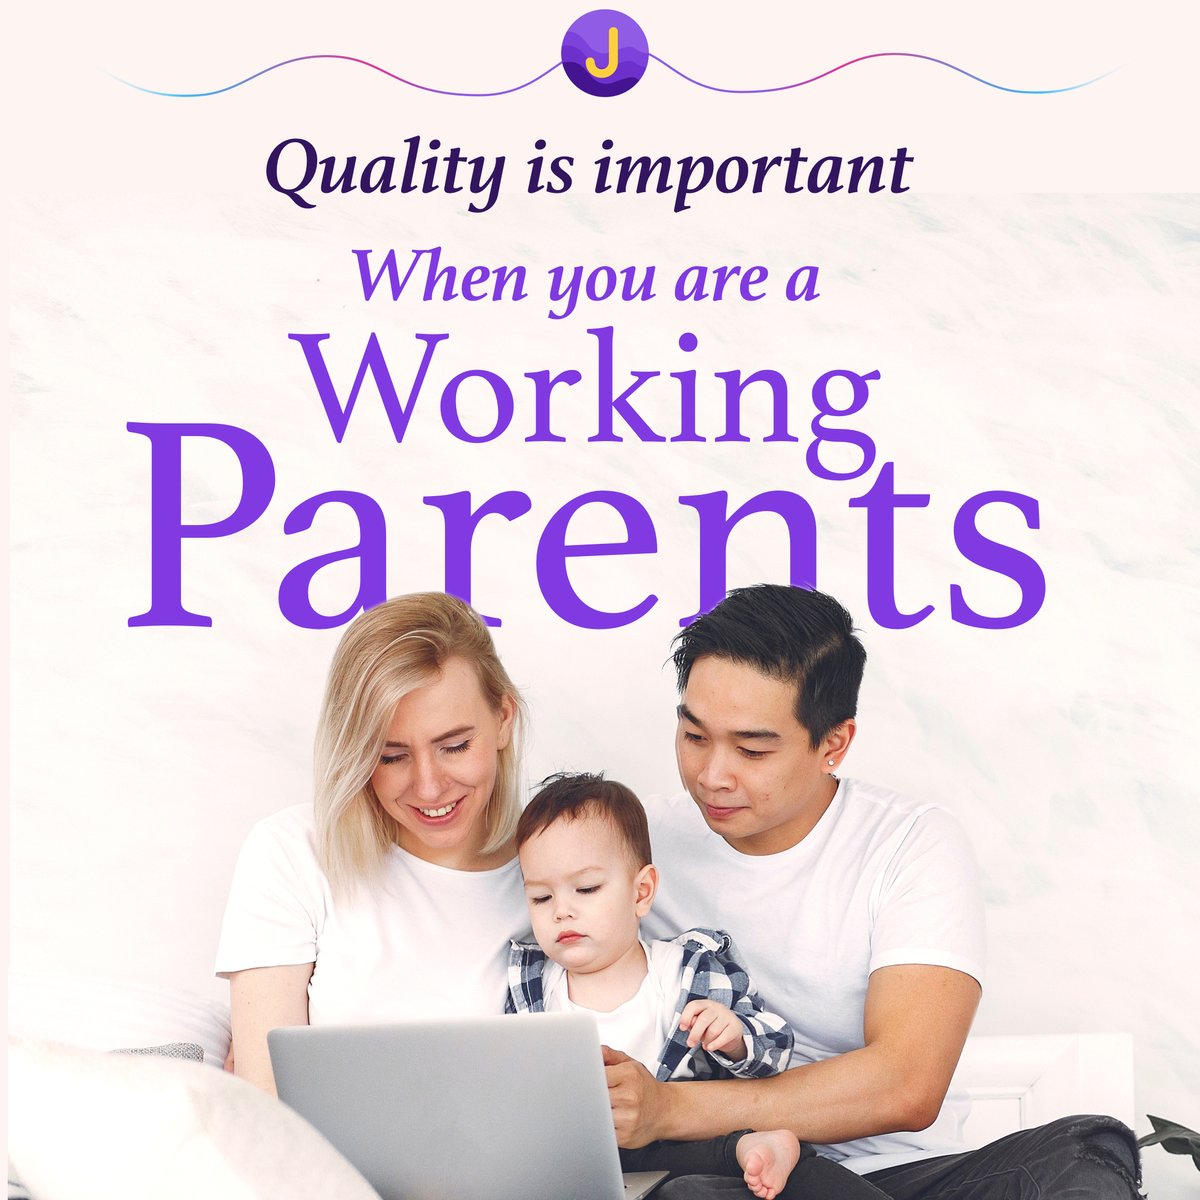 Quality is important. When you are a working parents, getting to your provider in a timely fashion is too. Our FREE app fulfills both of these criteria.   Download now: http://tiny.cc/0nvyoz http://tiny.cc/skvyoz  #developmentalmilestones #developmentaldelays @JiguarIncpic.twitter.com/Yxbaev2Y7L